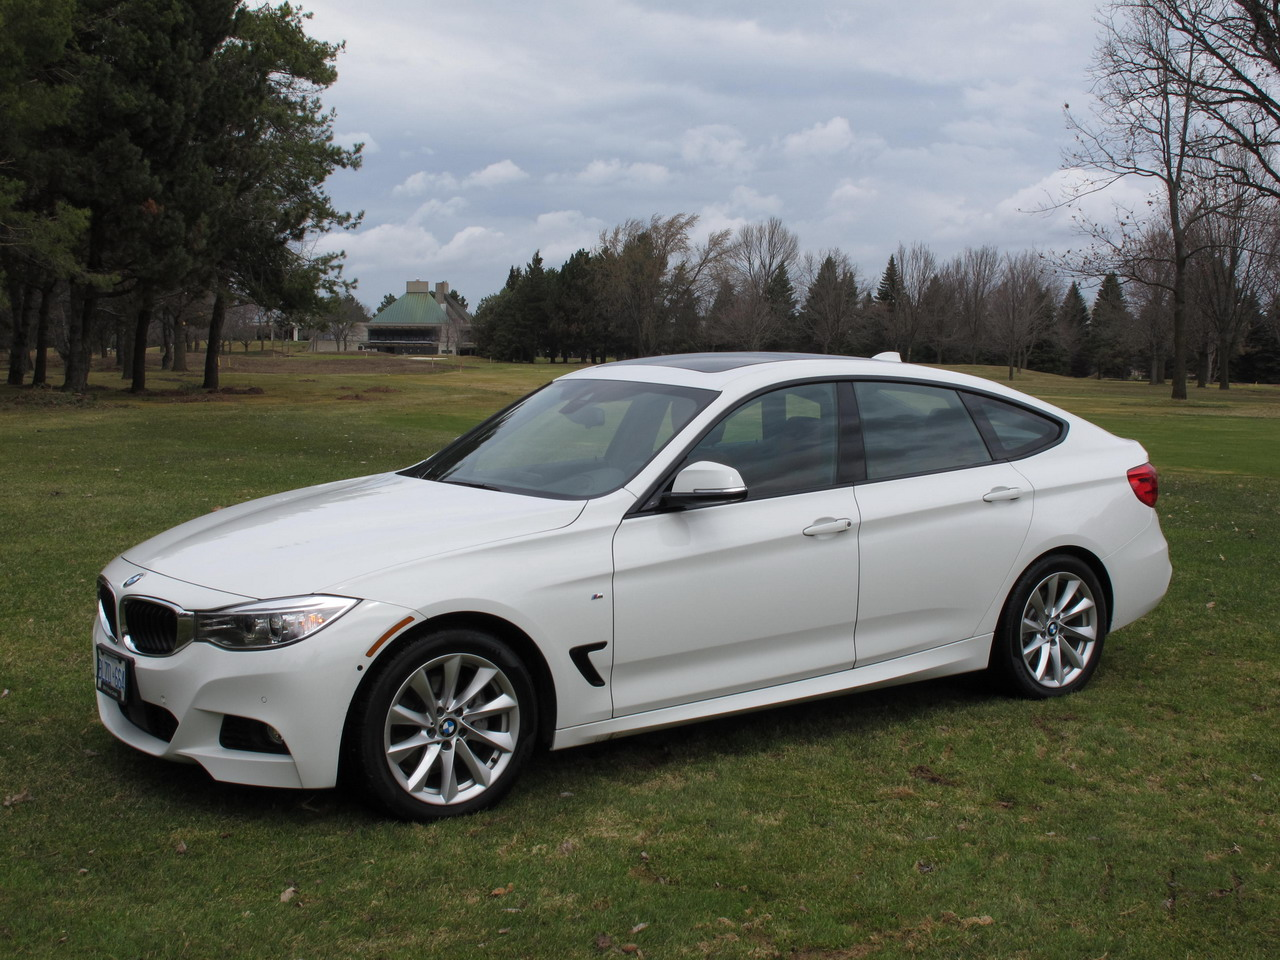 BMW I GT XDrive Review Cars Photos Test Drives And - 2014 bmw 335i coupe